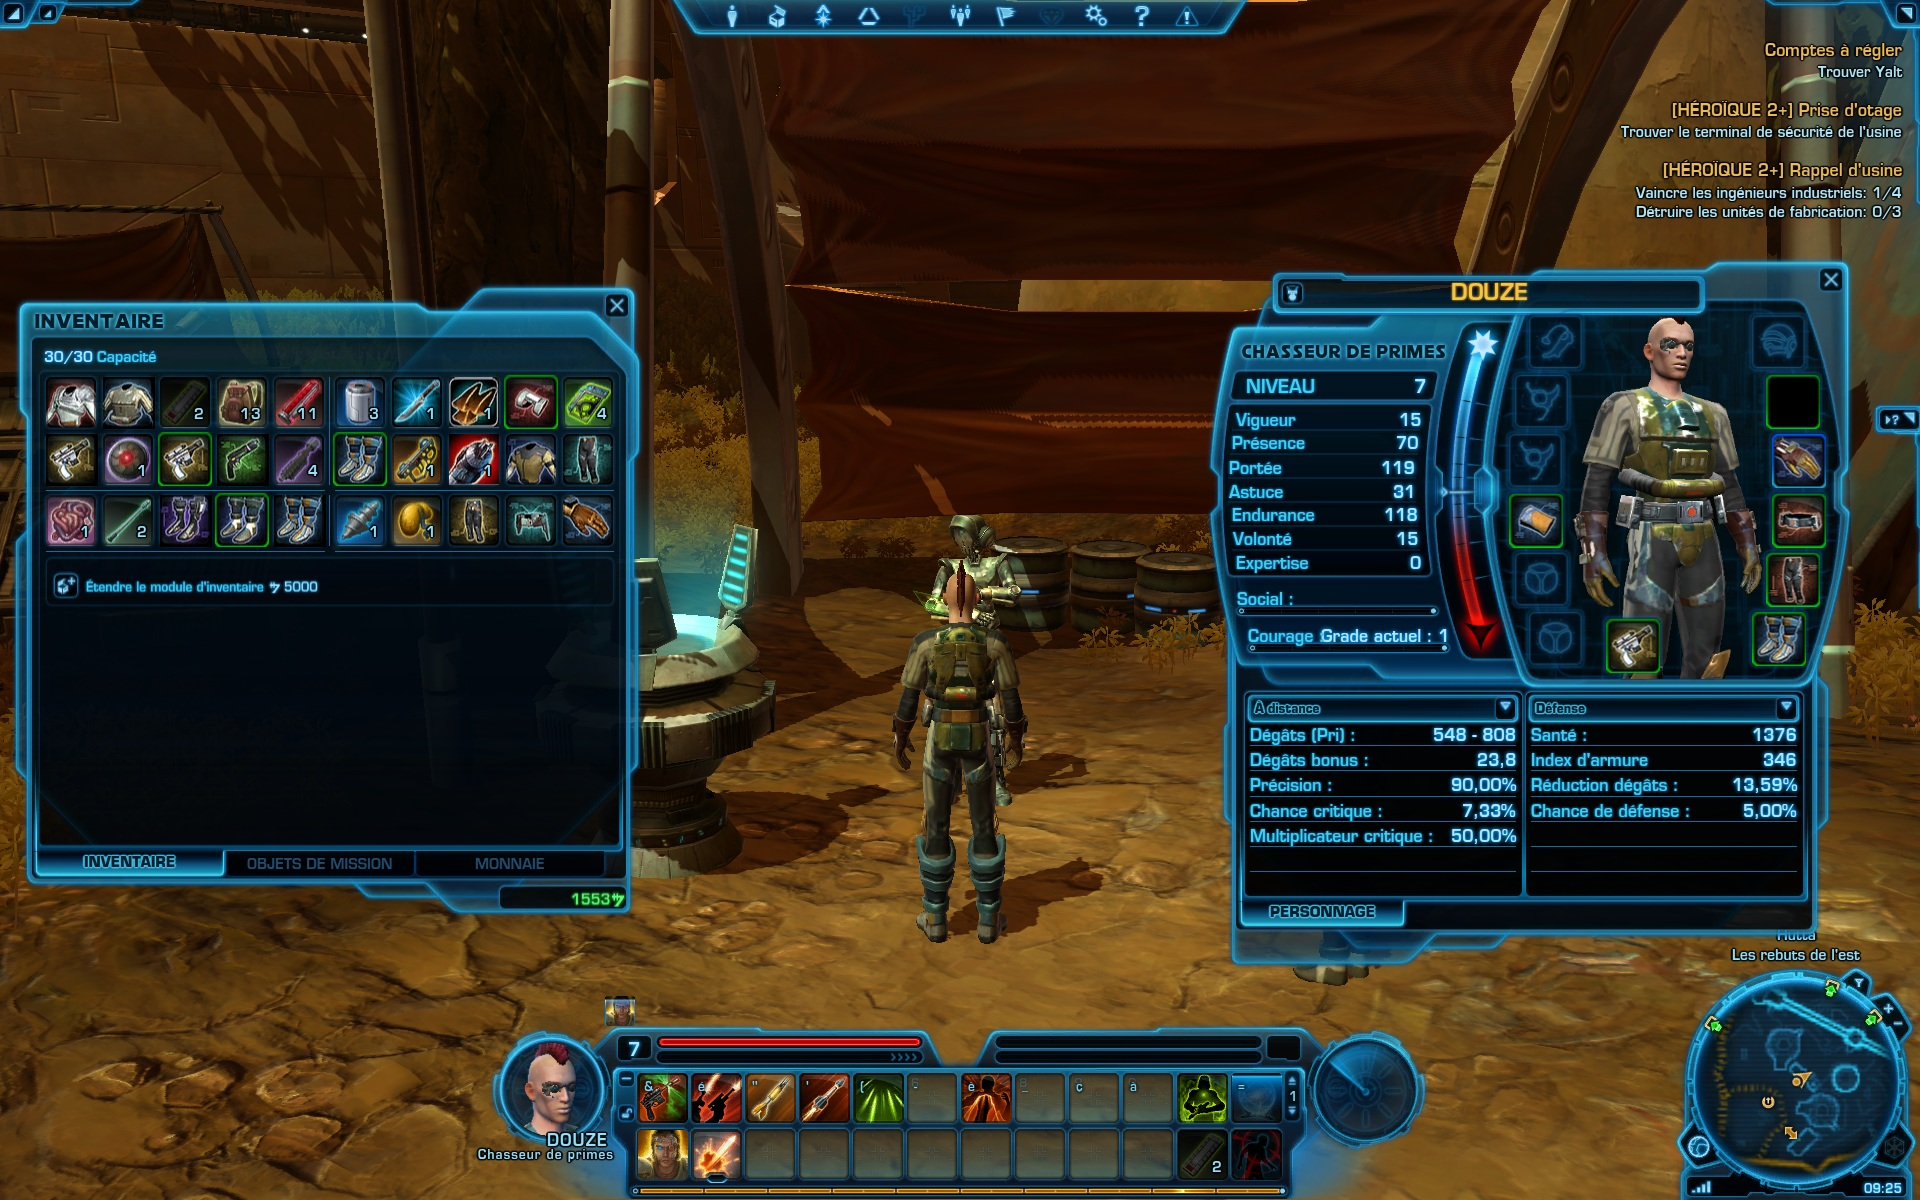 swtor beta - interface - 1920 x 1200 - swtor beta - interface